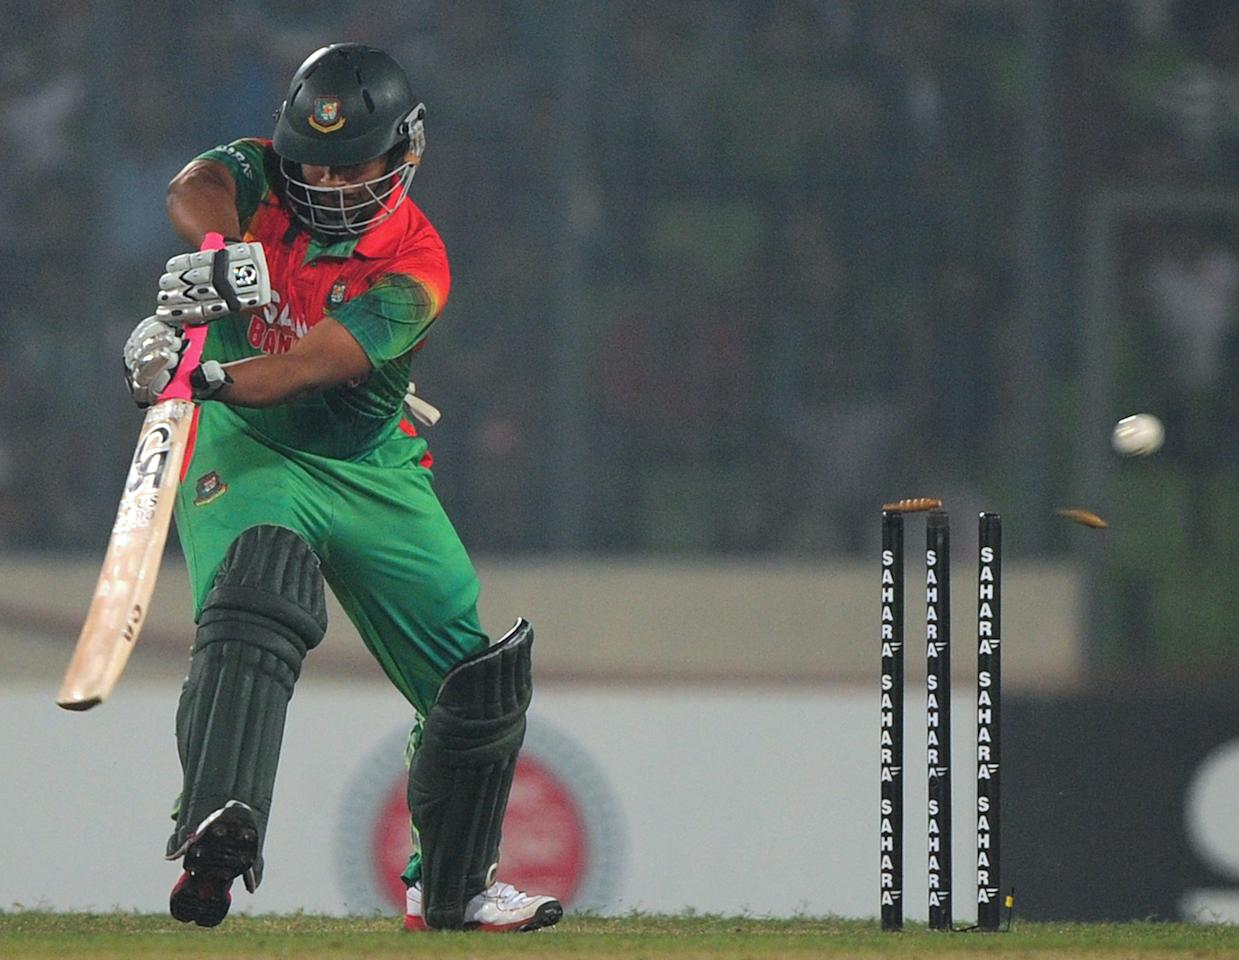 Bangladeshi batsman Tamim Iqbal is bowled by West Indies cricketer Kemar Roach during the fourth one day international cricket match between Bangladesh and the West Indies at The Sher-e-Bangla National Cricket Stadium in Dhaka on December 7, 2012. AFP PHOTO/ Munir uz ZAMAN